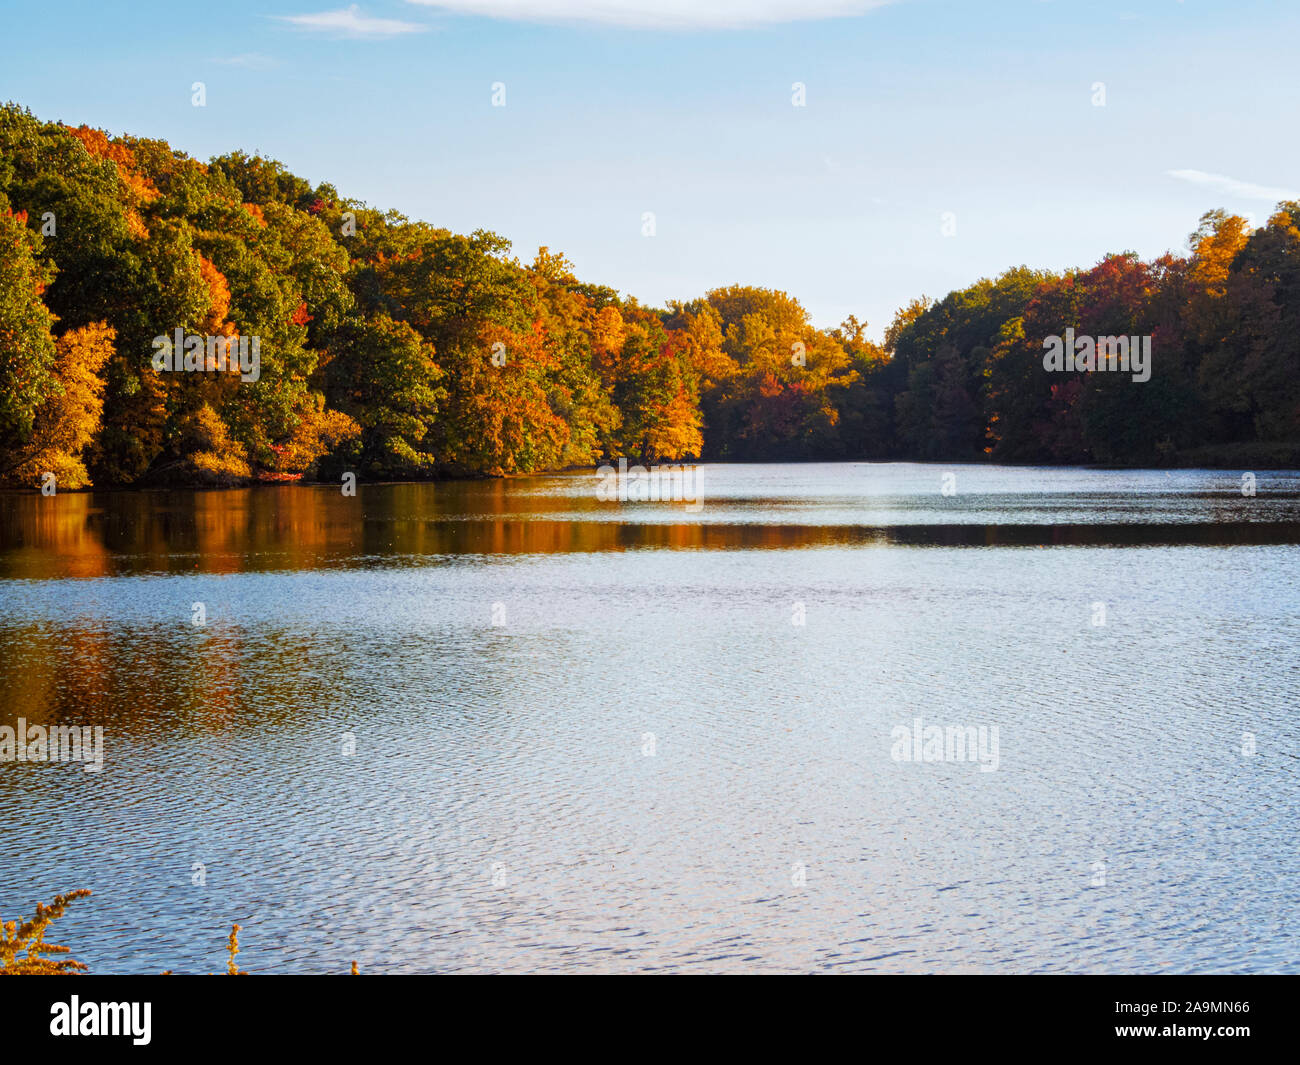 fall-in-new-york-state-at-rockefeller-state-park-preserve-beautiful-autumn-leaves-reflected-in-swan-lake-2A9MN66.jpg